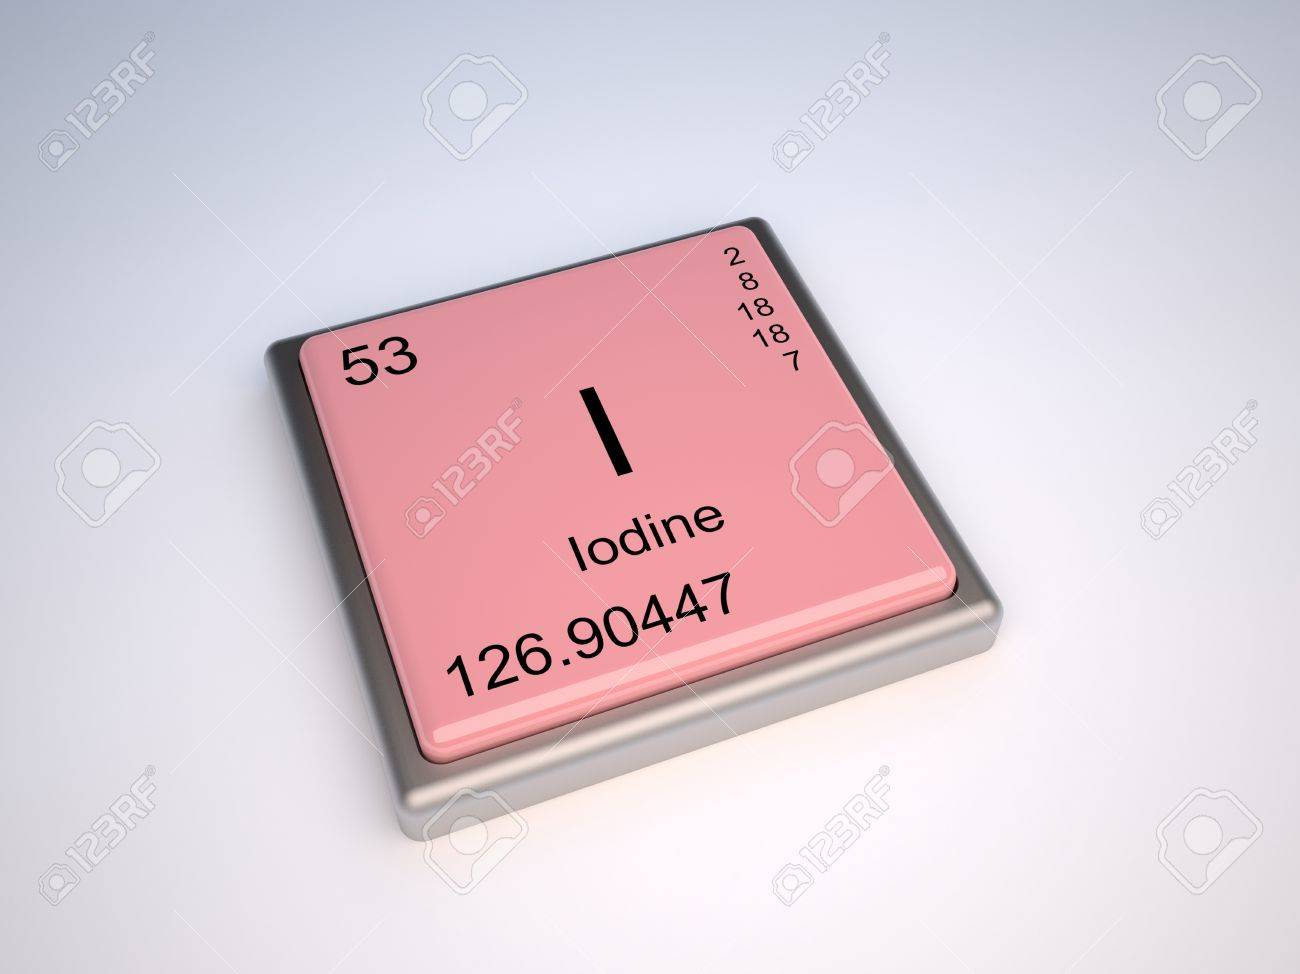 Iodine chemical element of the periodic table with symbol I Stock Photo - 9257090